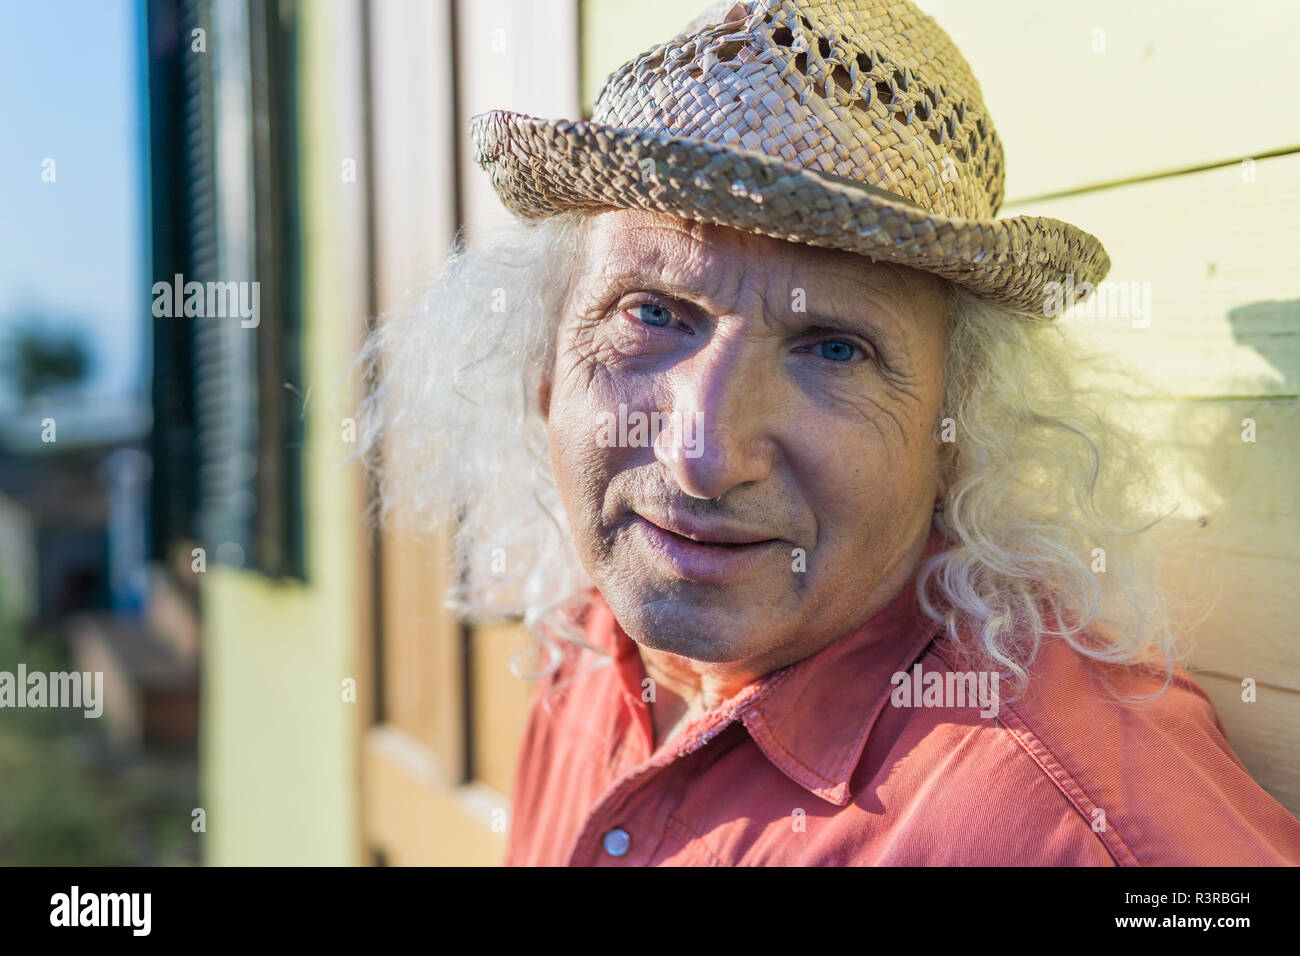 Portrait of senior man with long gray hair wearing straw hat - Stock Image